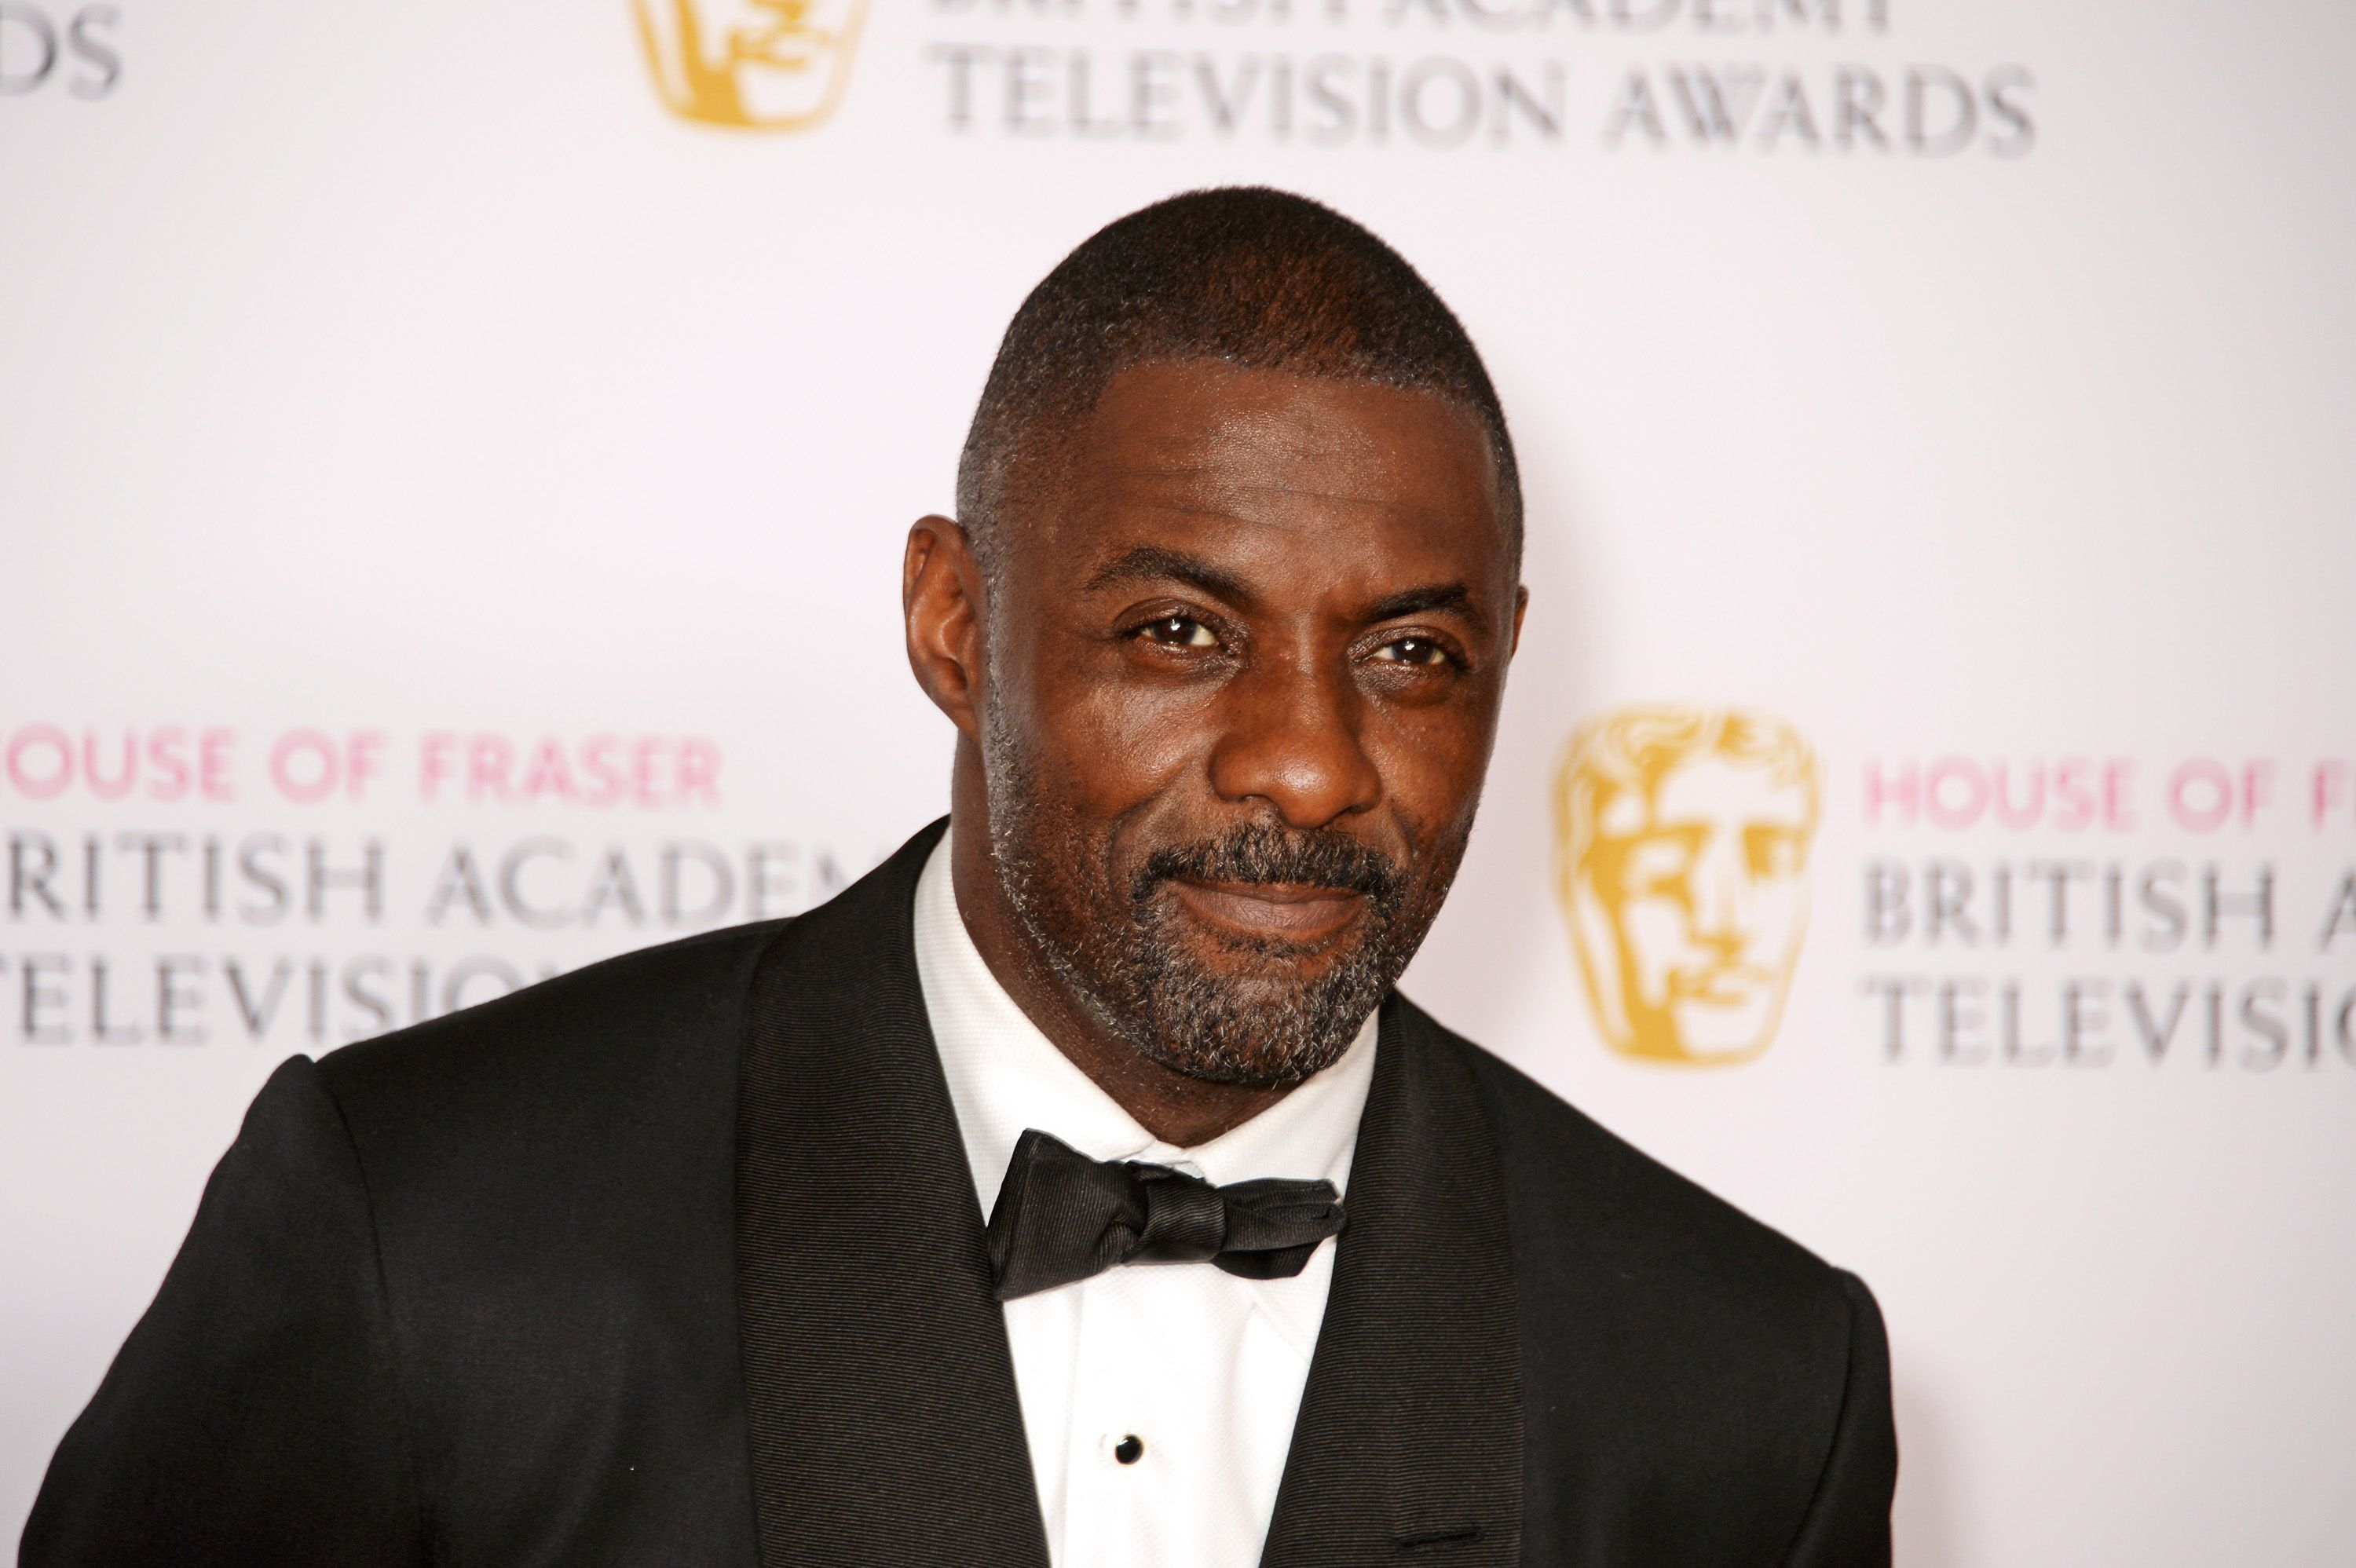 https://hips.hearstapps.com/hmg-prod.s3.amazonaws.com/images/presenter-idris-elba-poses-in-the-winners-room-at-the-house-news-photo-529207302-1552934261.jpg